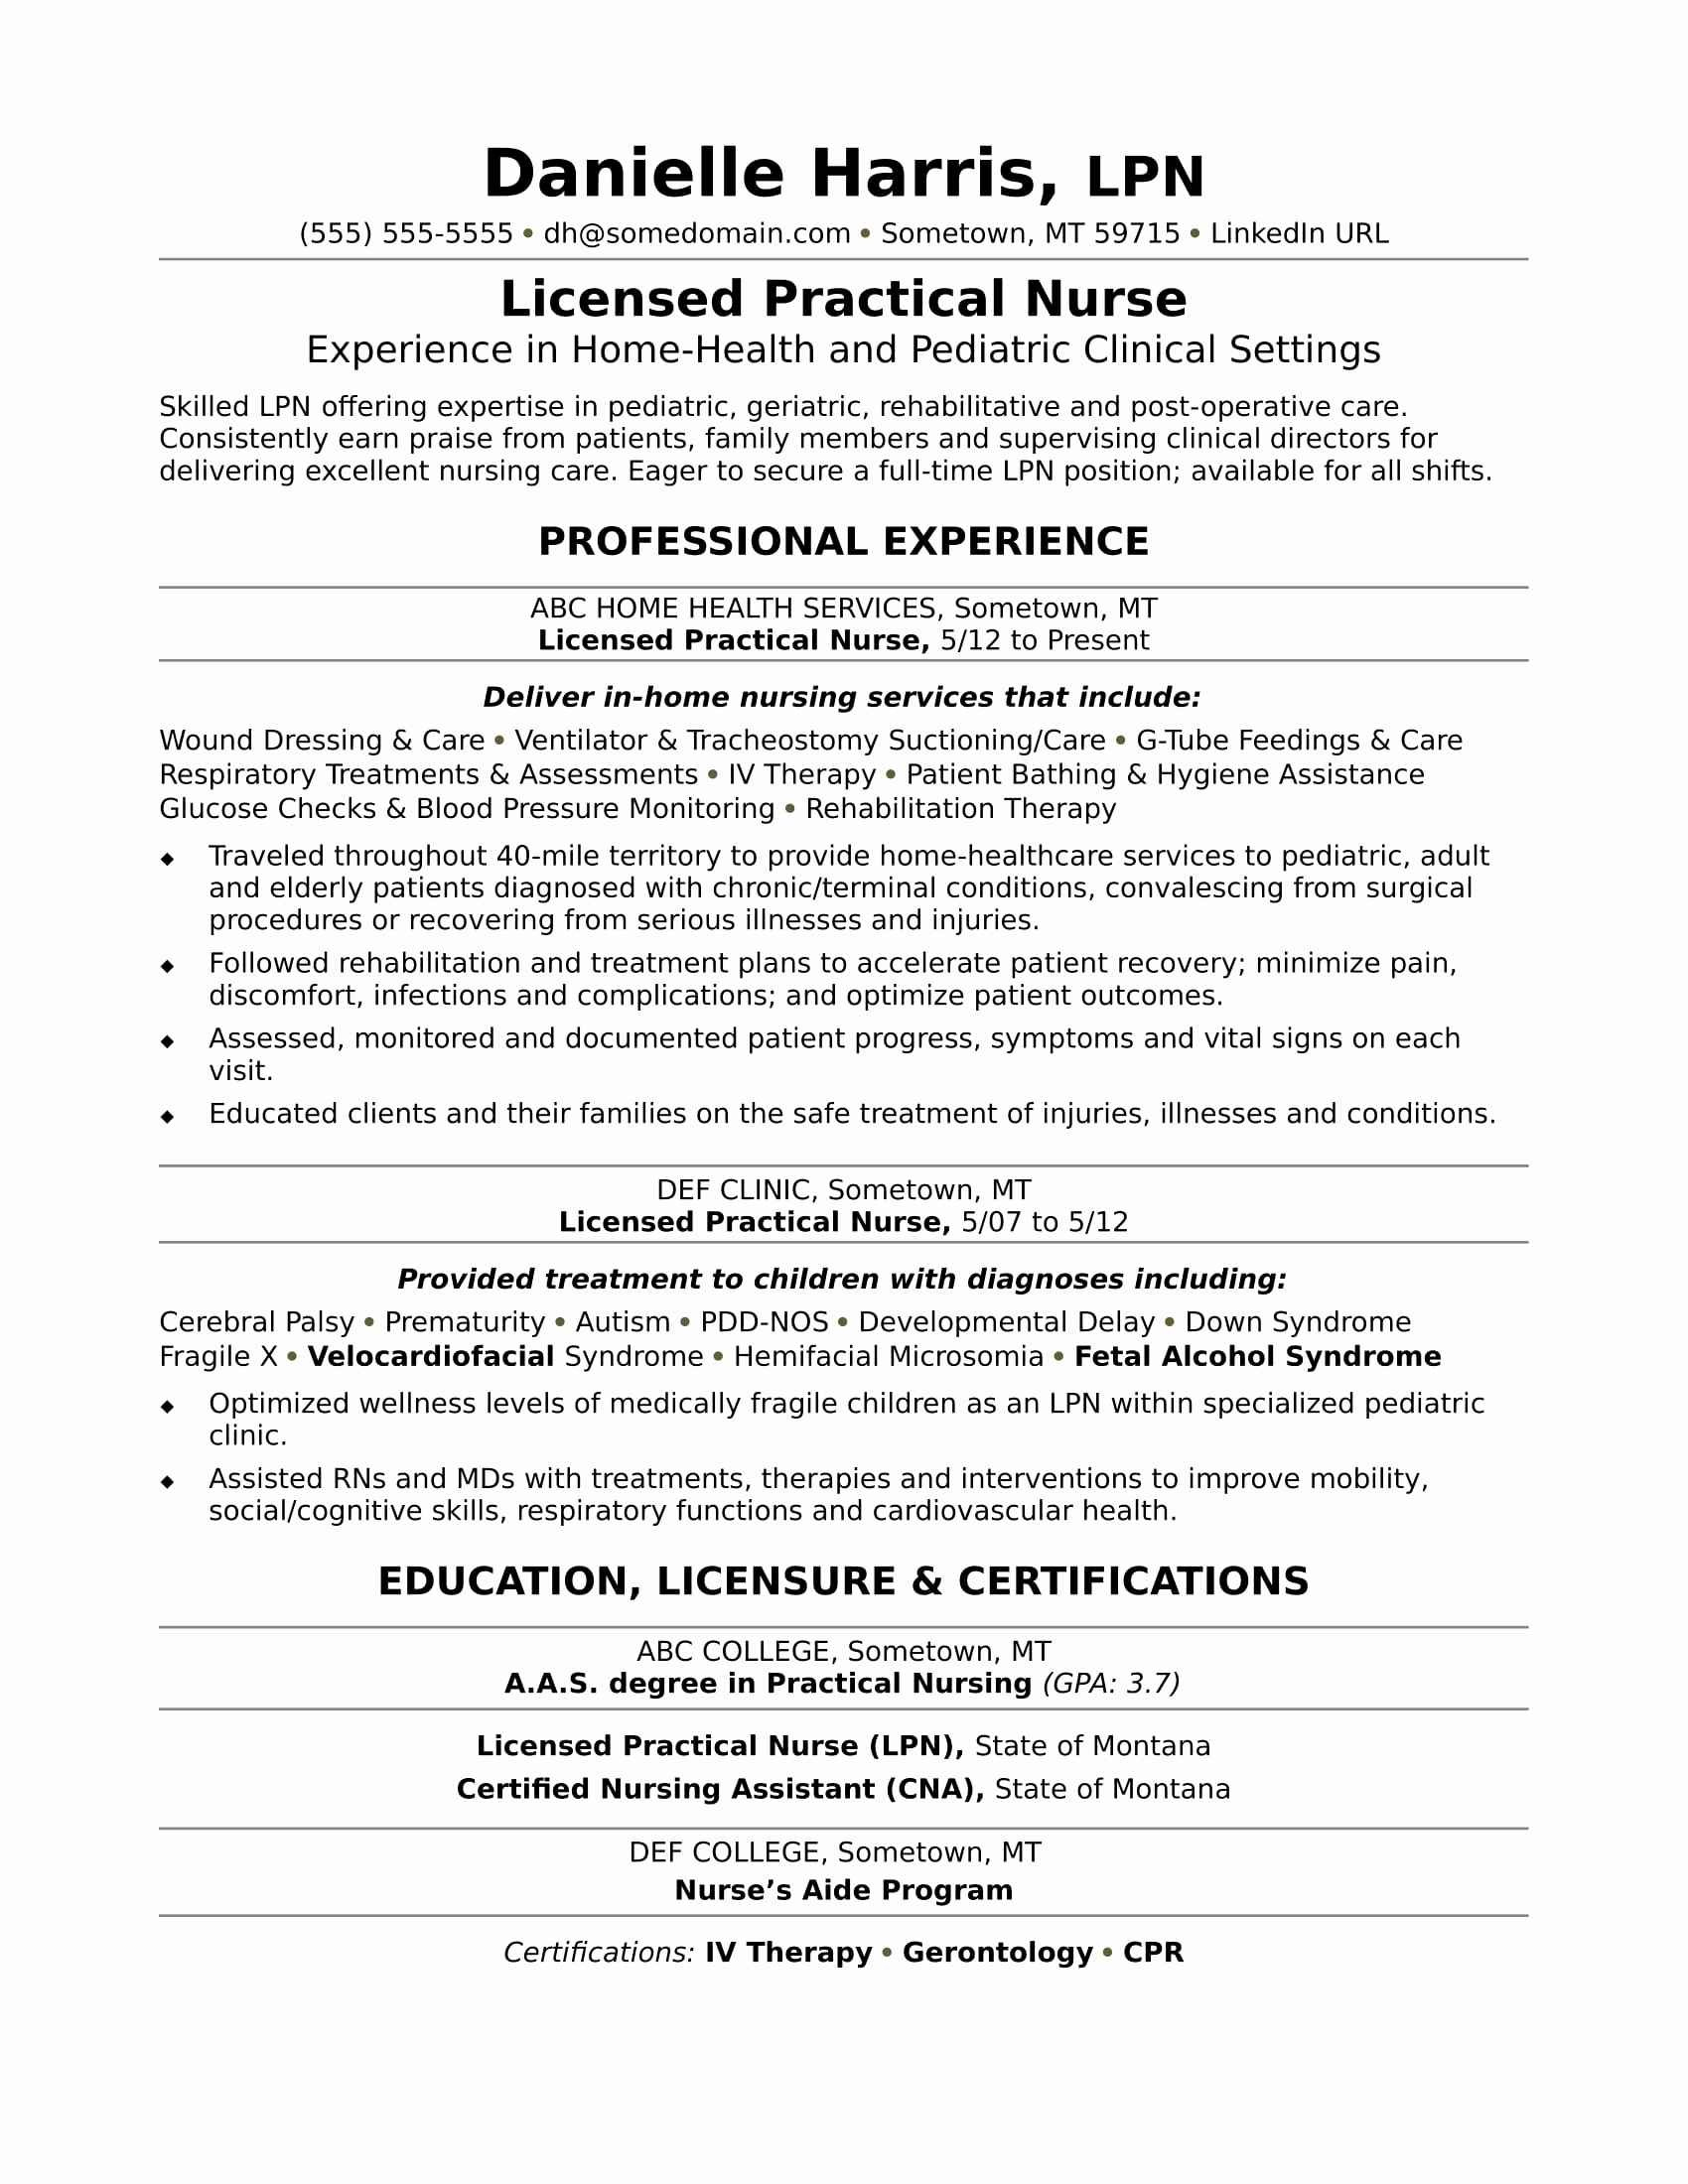 Nursing Resume Objective - Standard Resume Objective Best How to Make A Standard Resume Luxury